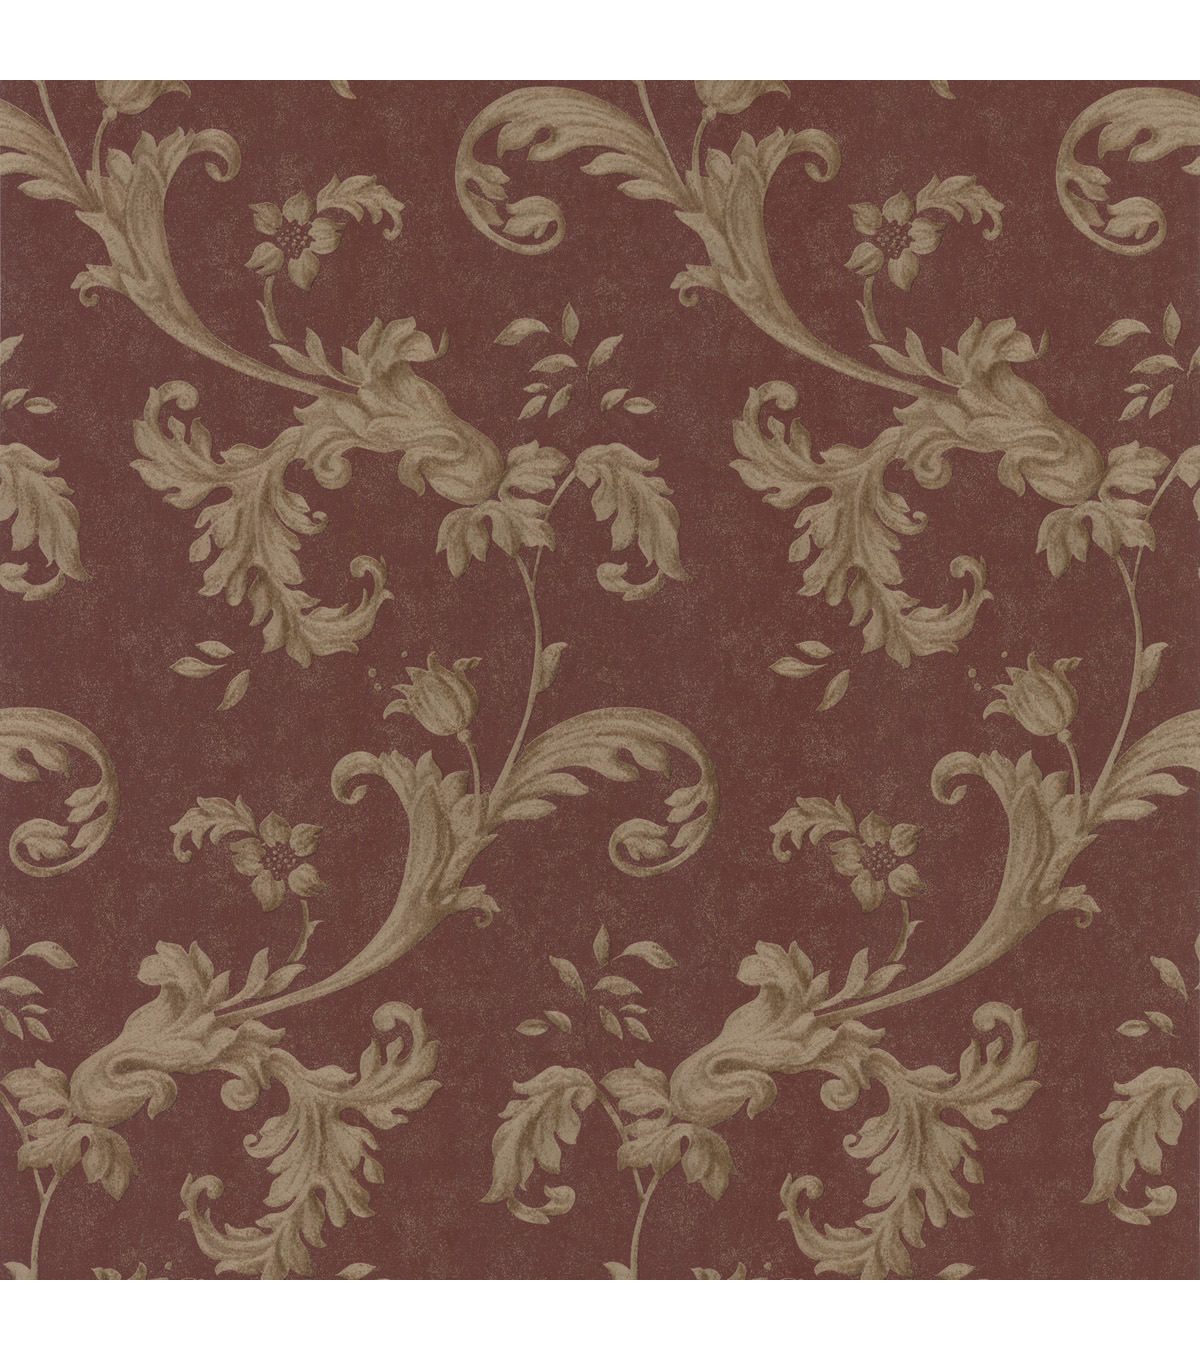 Isleworth Burgundy Floral Scroll Wallpaper